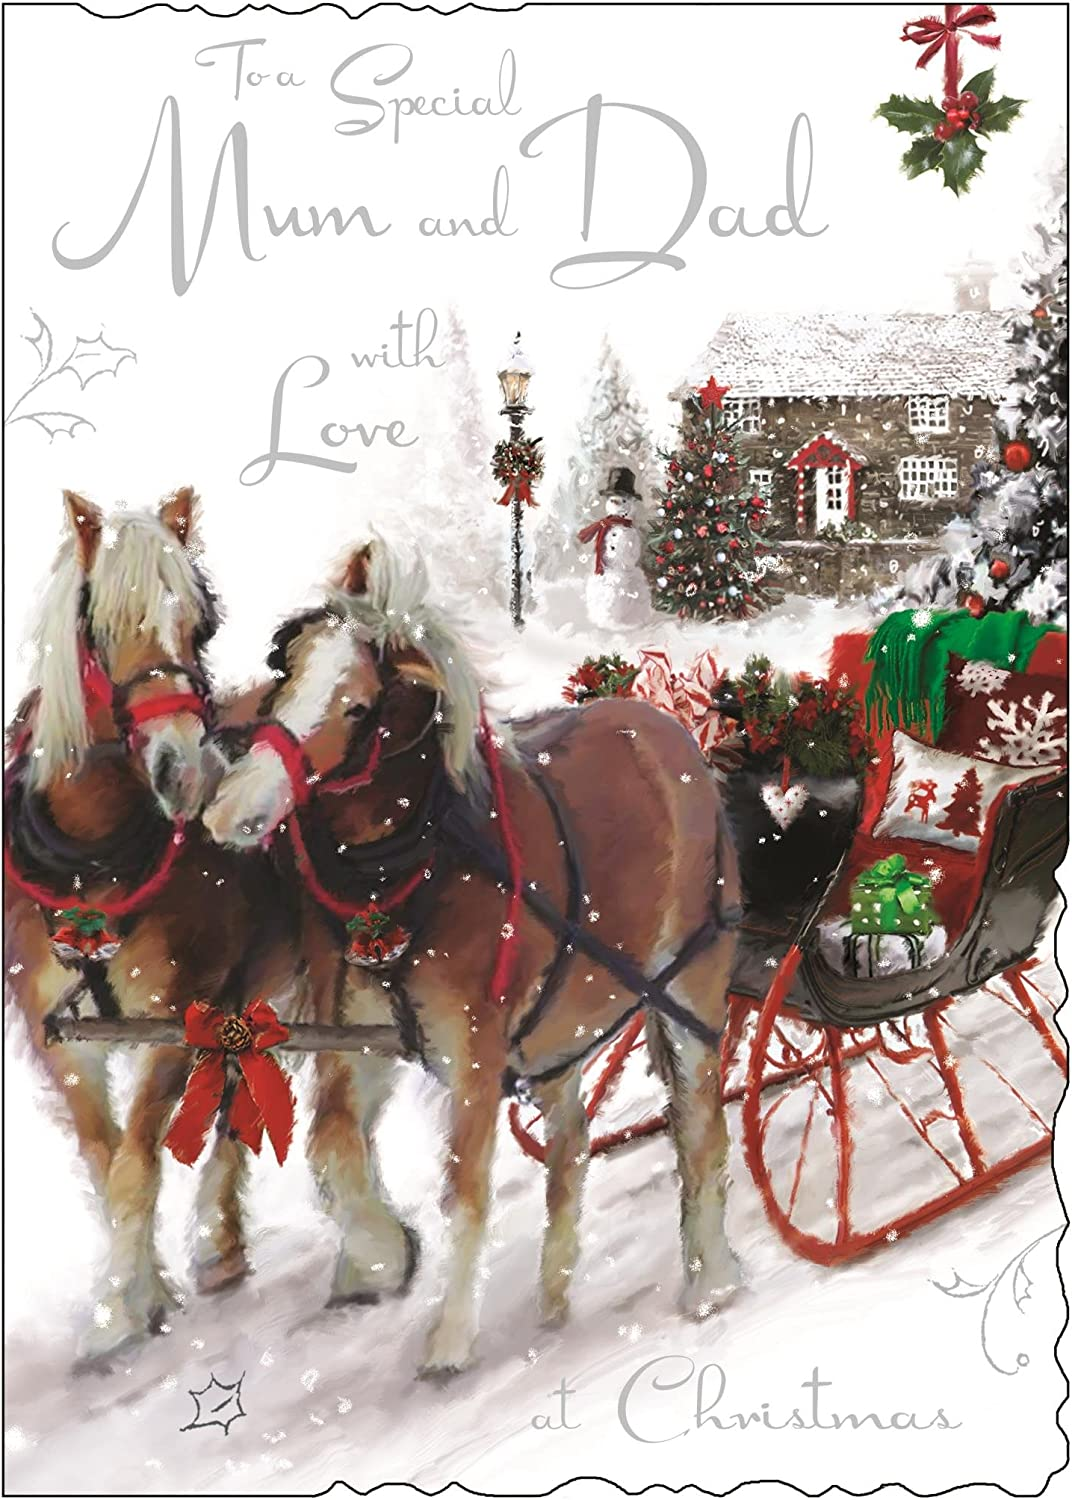 Christmas Luxury Card  Made In UK To a Special Mum and Dad